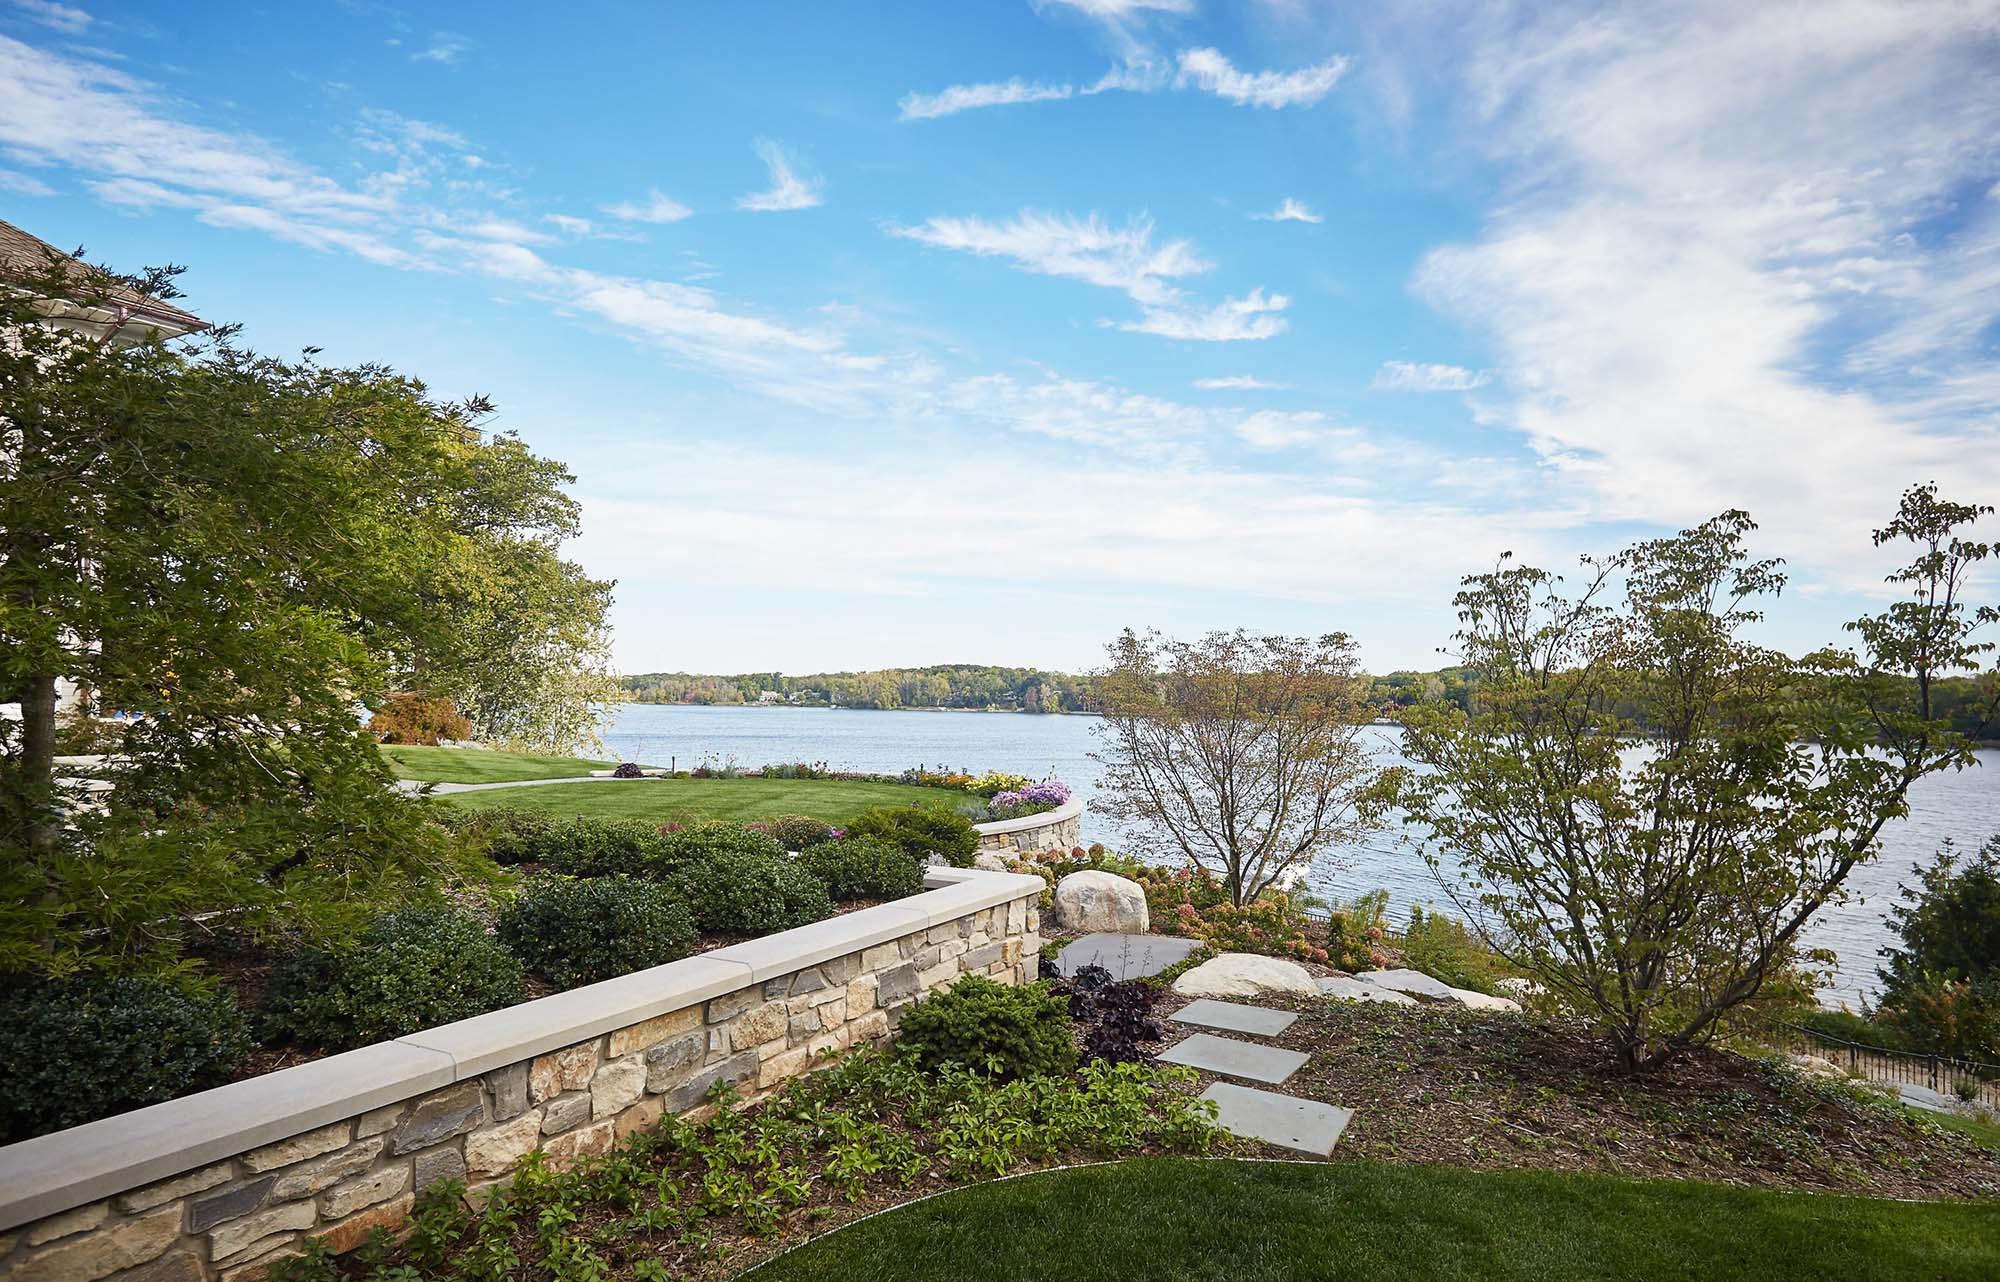 waterfront real stone retaining wall with concrete cap and beautiful landscaping